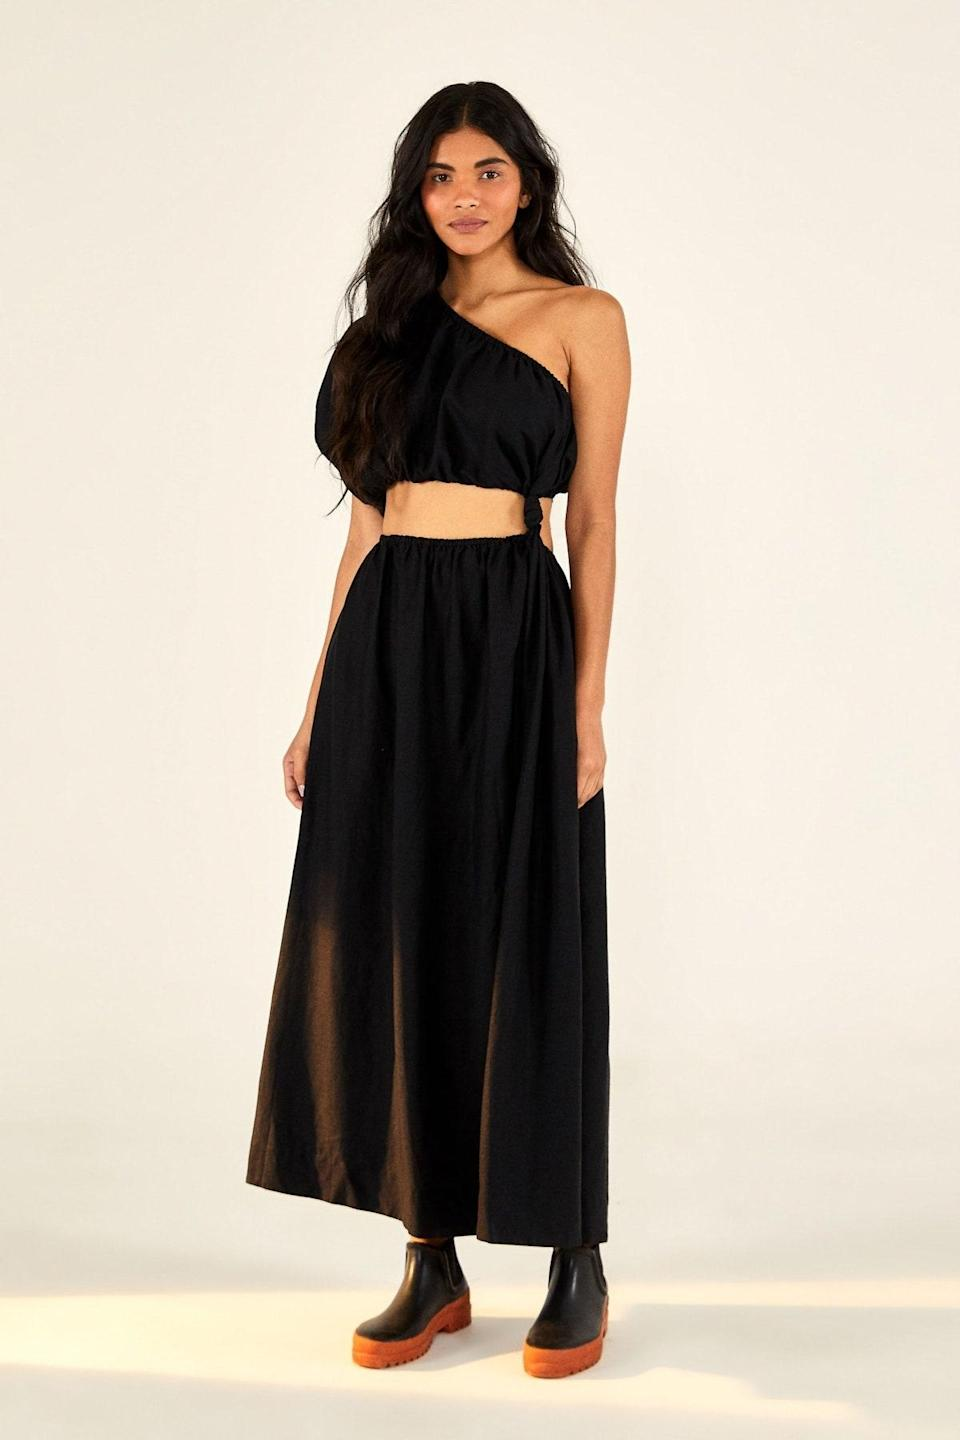 """The only thing we love more than a cold-shoulder moment is when it's served with a healthy side of midriff. $200, Farm Rio. <a href=""""https://www.farmrio.com/collections/new-in/products/one-shoulder-black-dress"""" rel=""""nofollow noopener"""" target=""""_blank"""" data-ylk=""""slk:Get it now!"""" class=""""link rapid-noclick-resp"""">Get it now!</a>"""